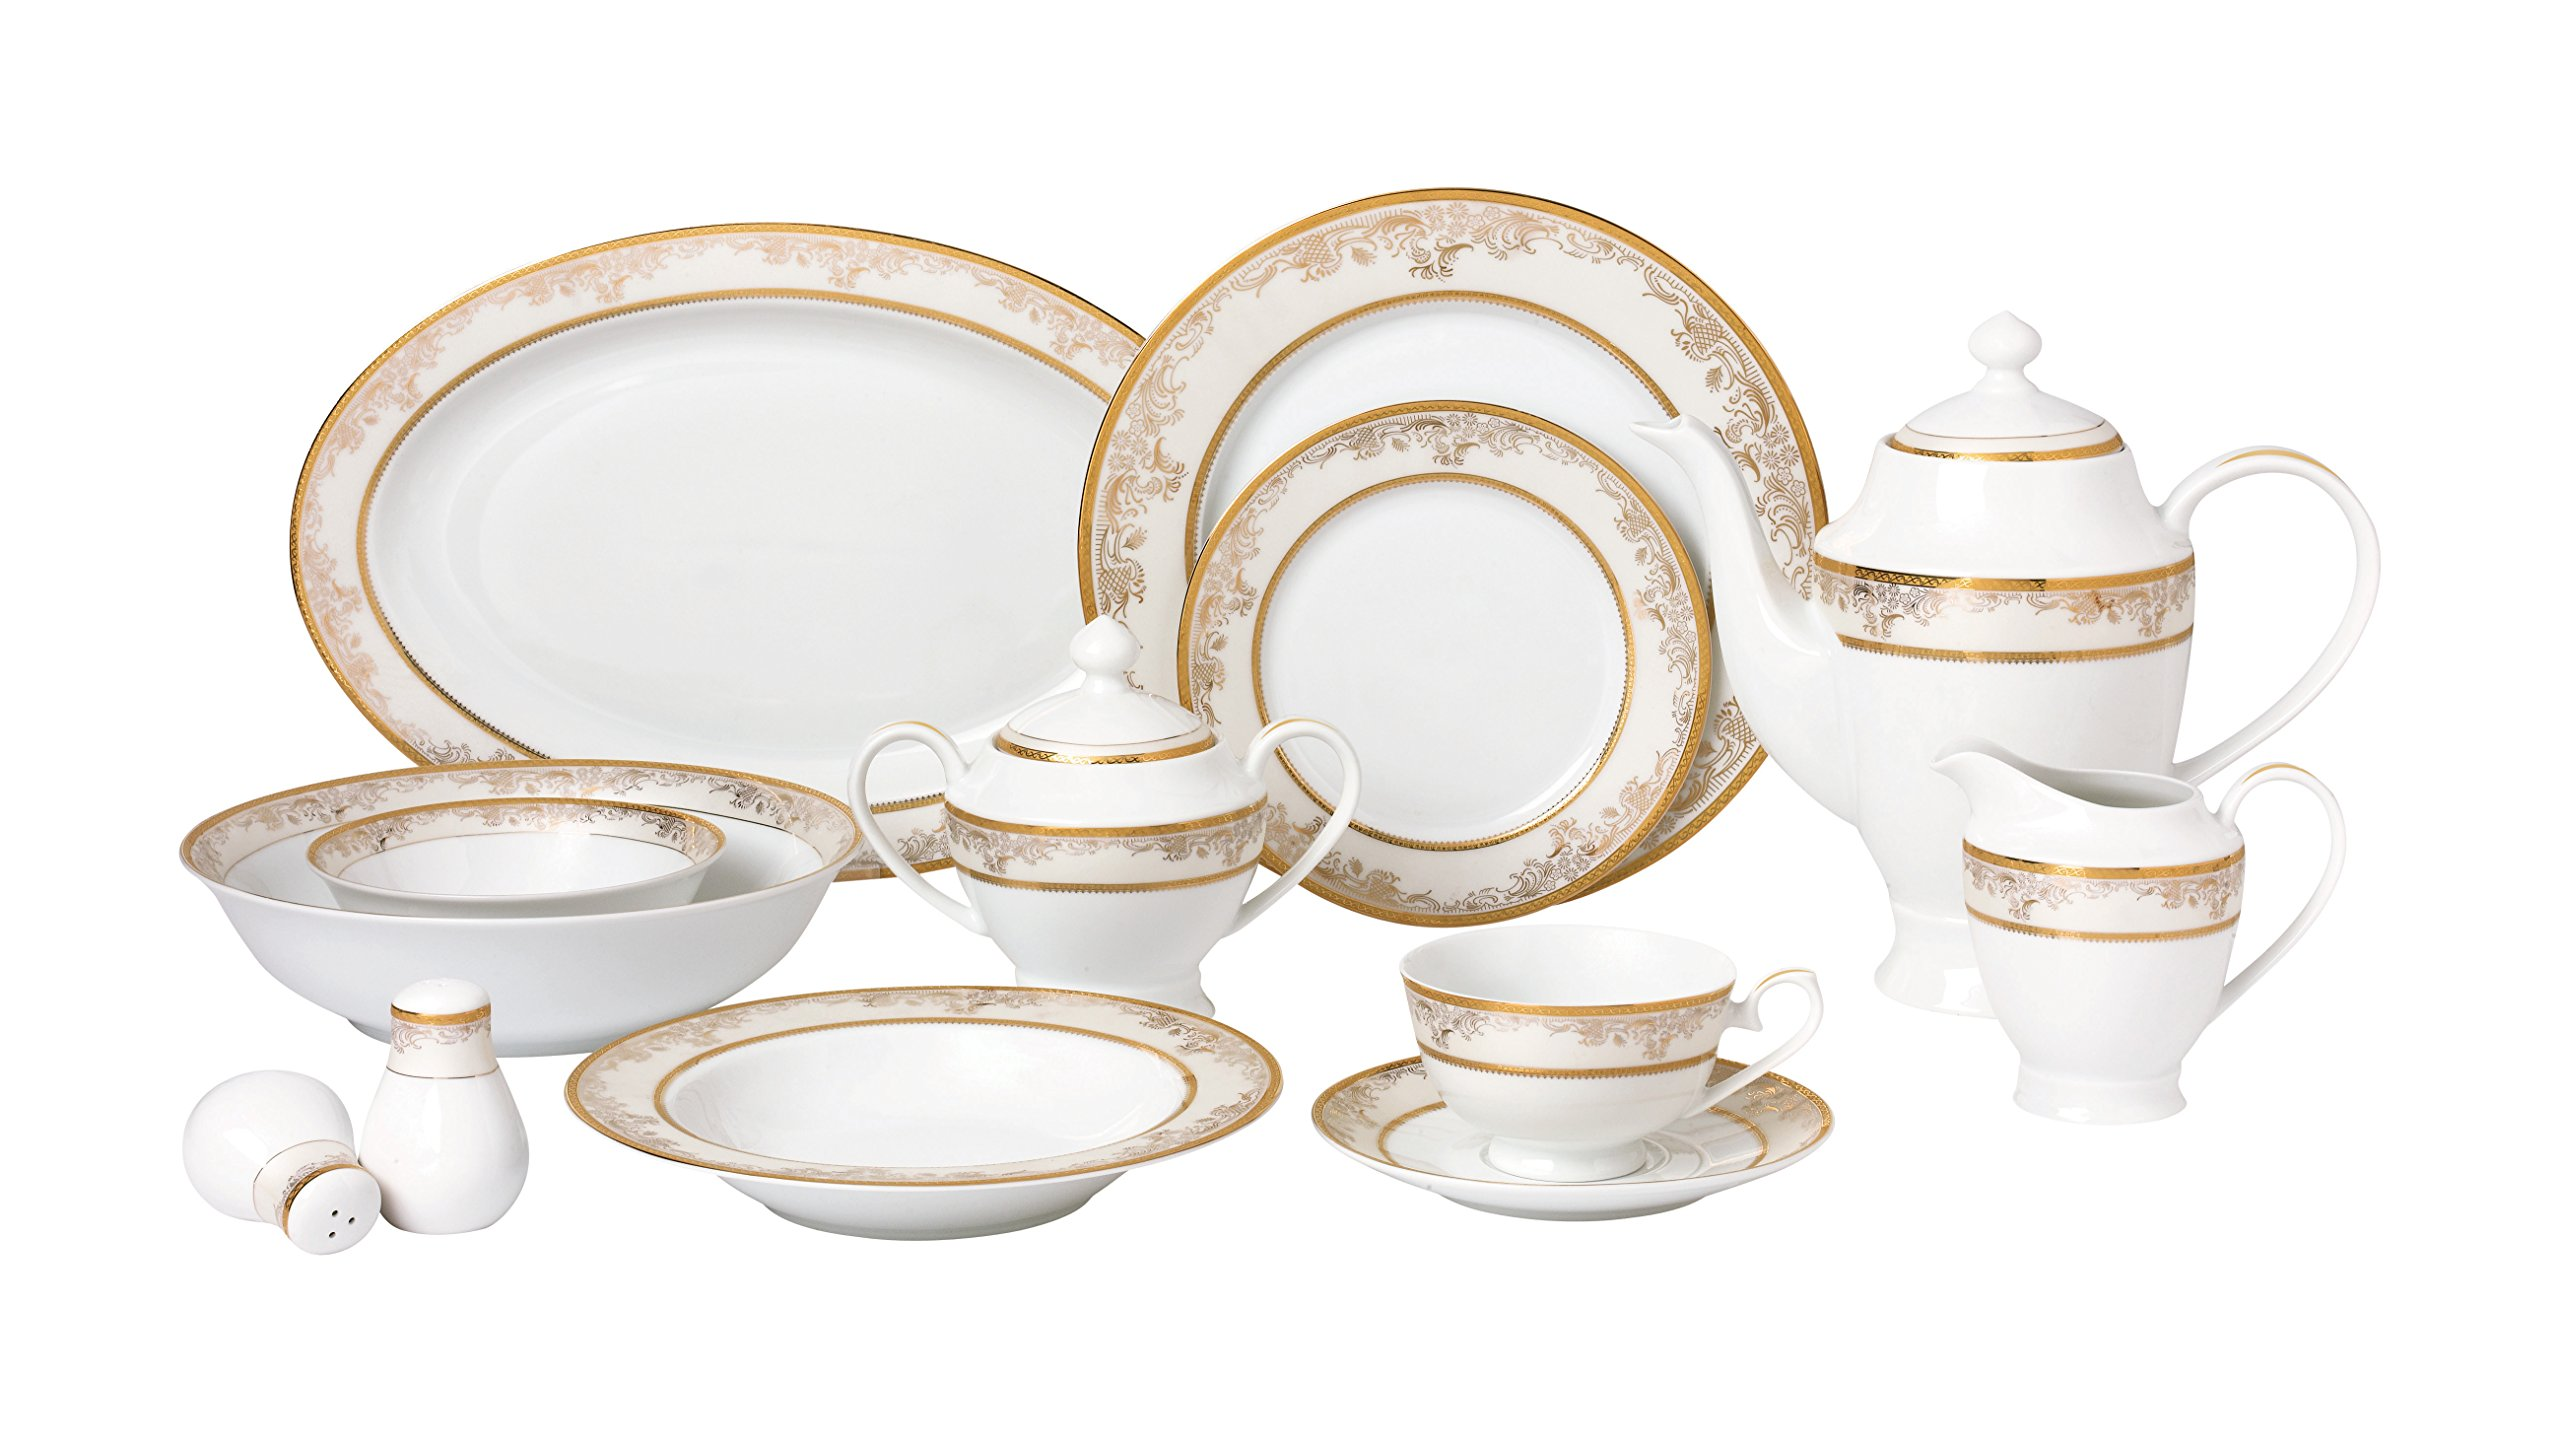 Lorren Home Trends 57 Piece 'Chloe' Bone China Dinnerware Set (Service for 8 People), Gold by Lorren Home Trends